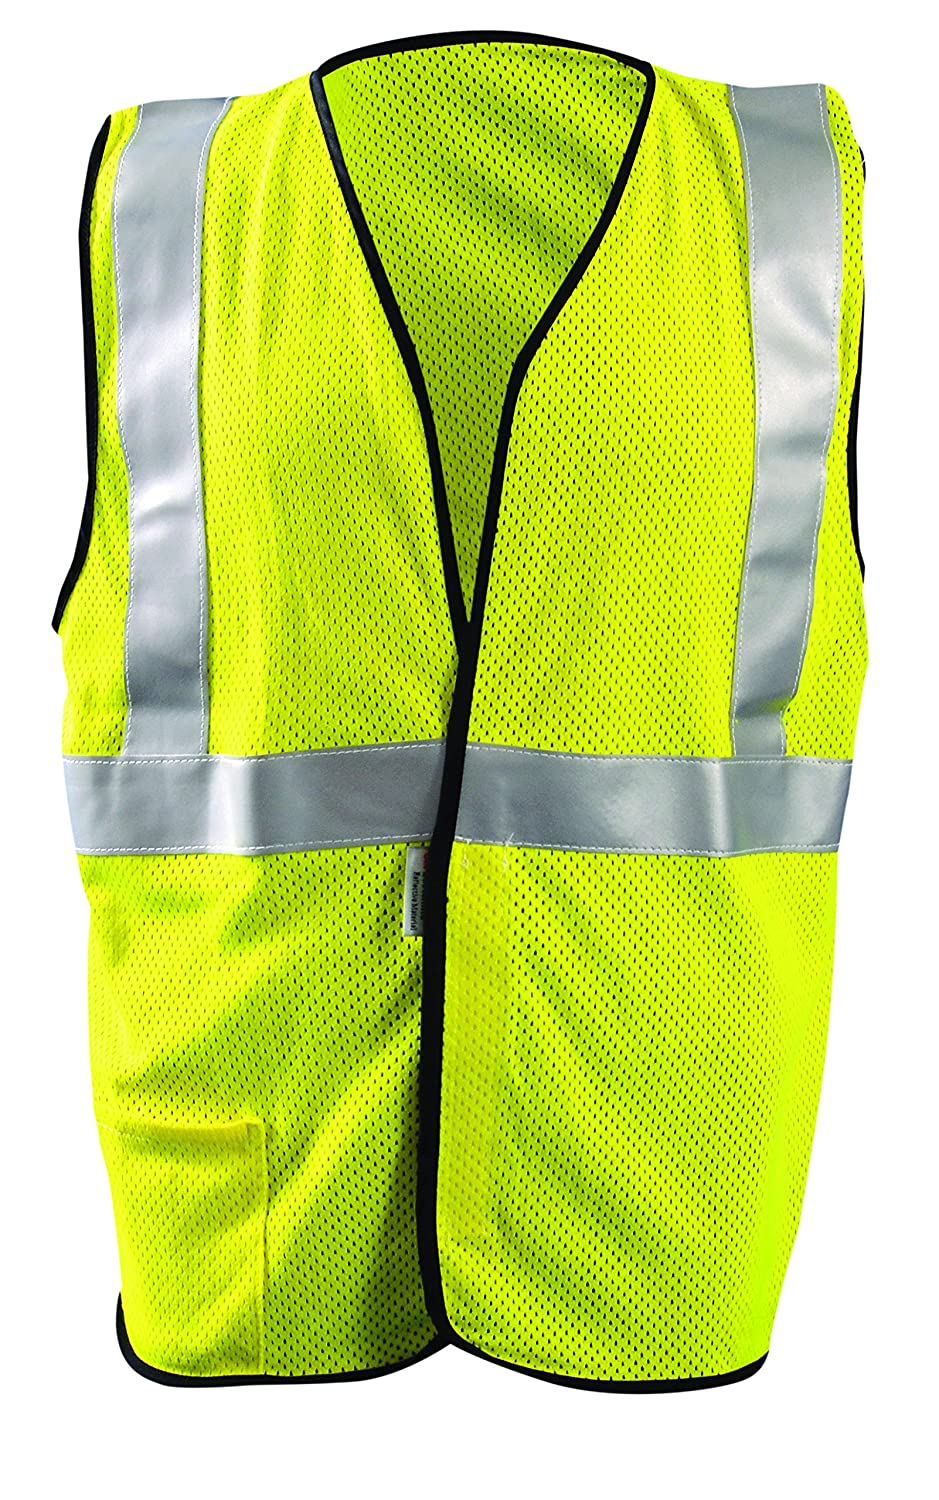 Occunomix LUX-HSFULLG-YM Class 3 Premium Solid Dual Stripe Visibility Vests, Medium, Yellow by Occunomix B004RI67BC